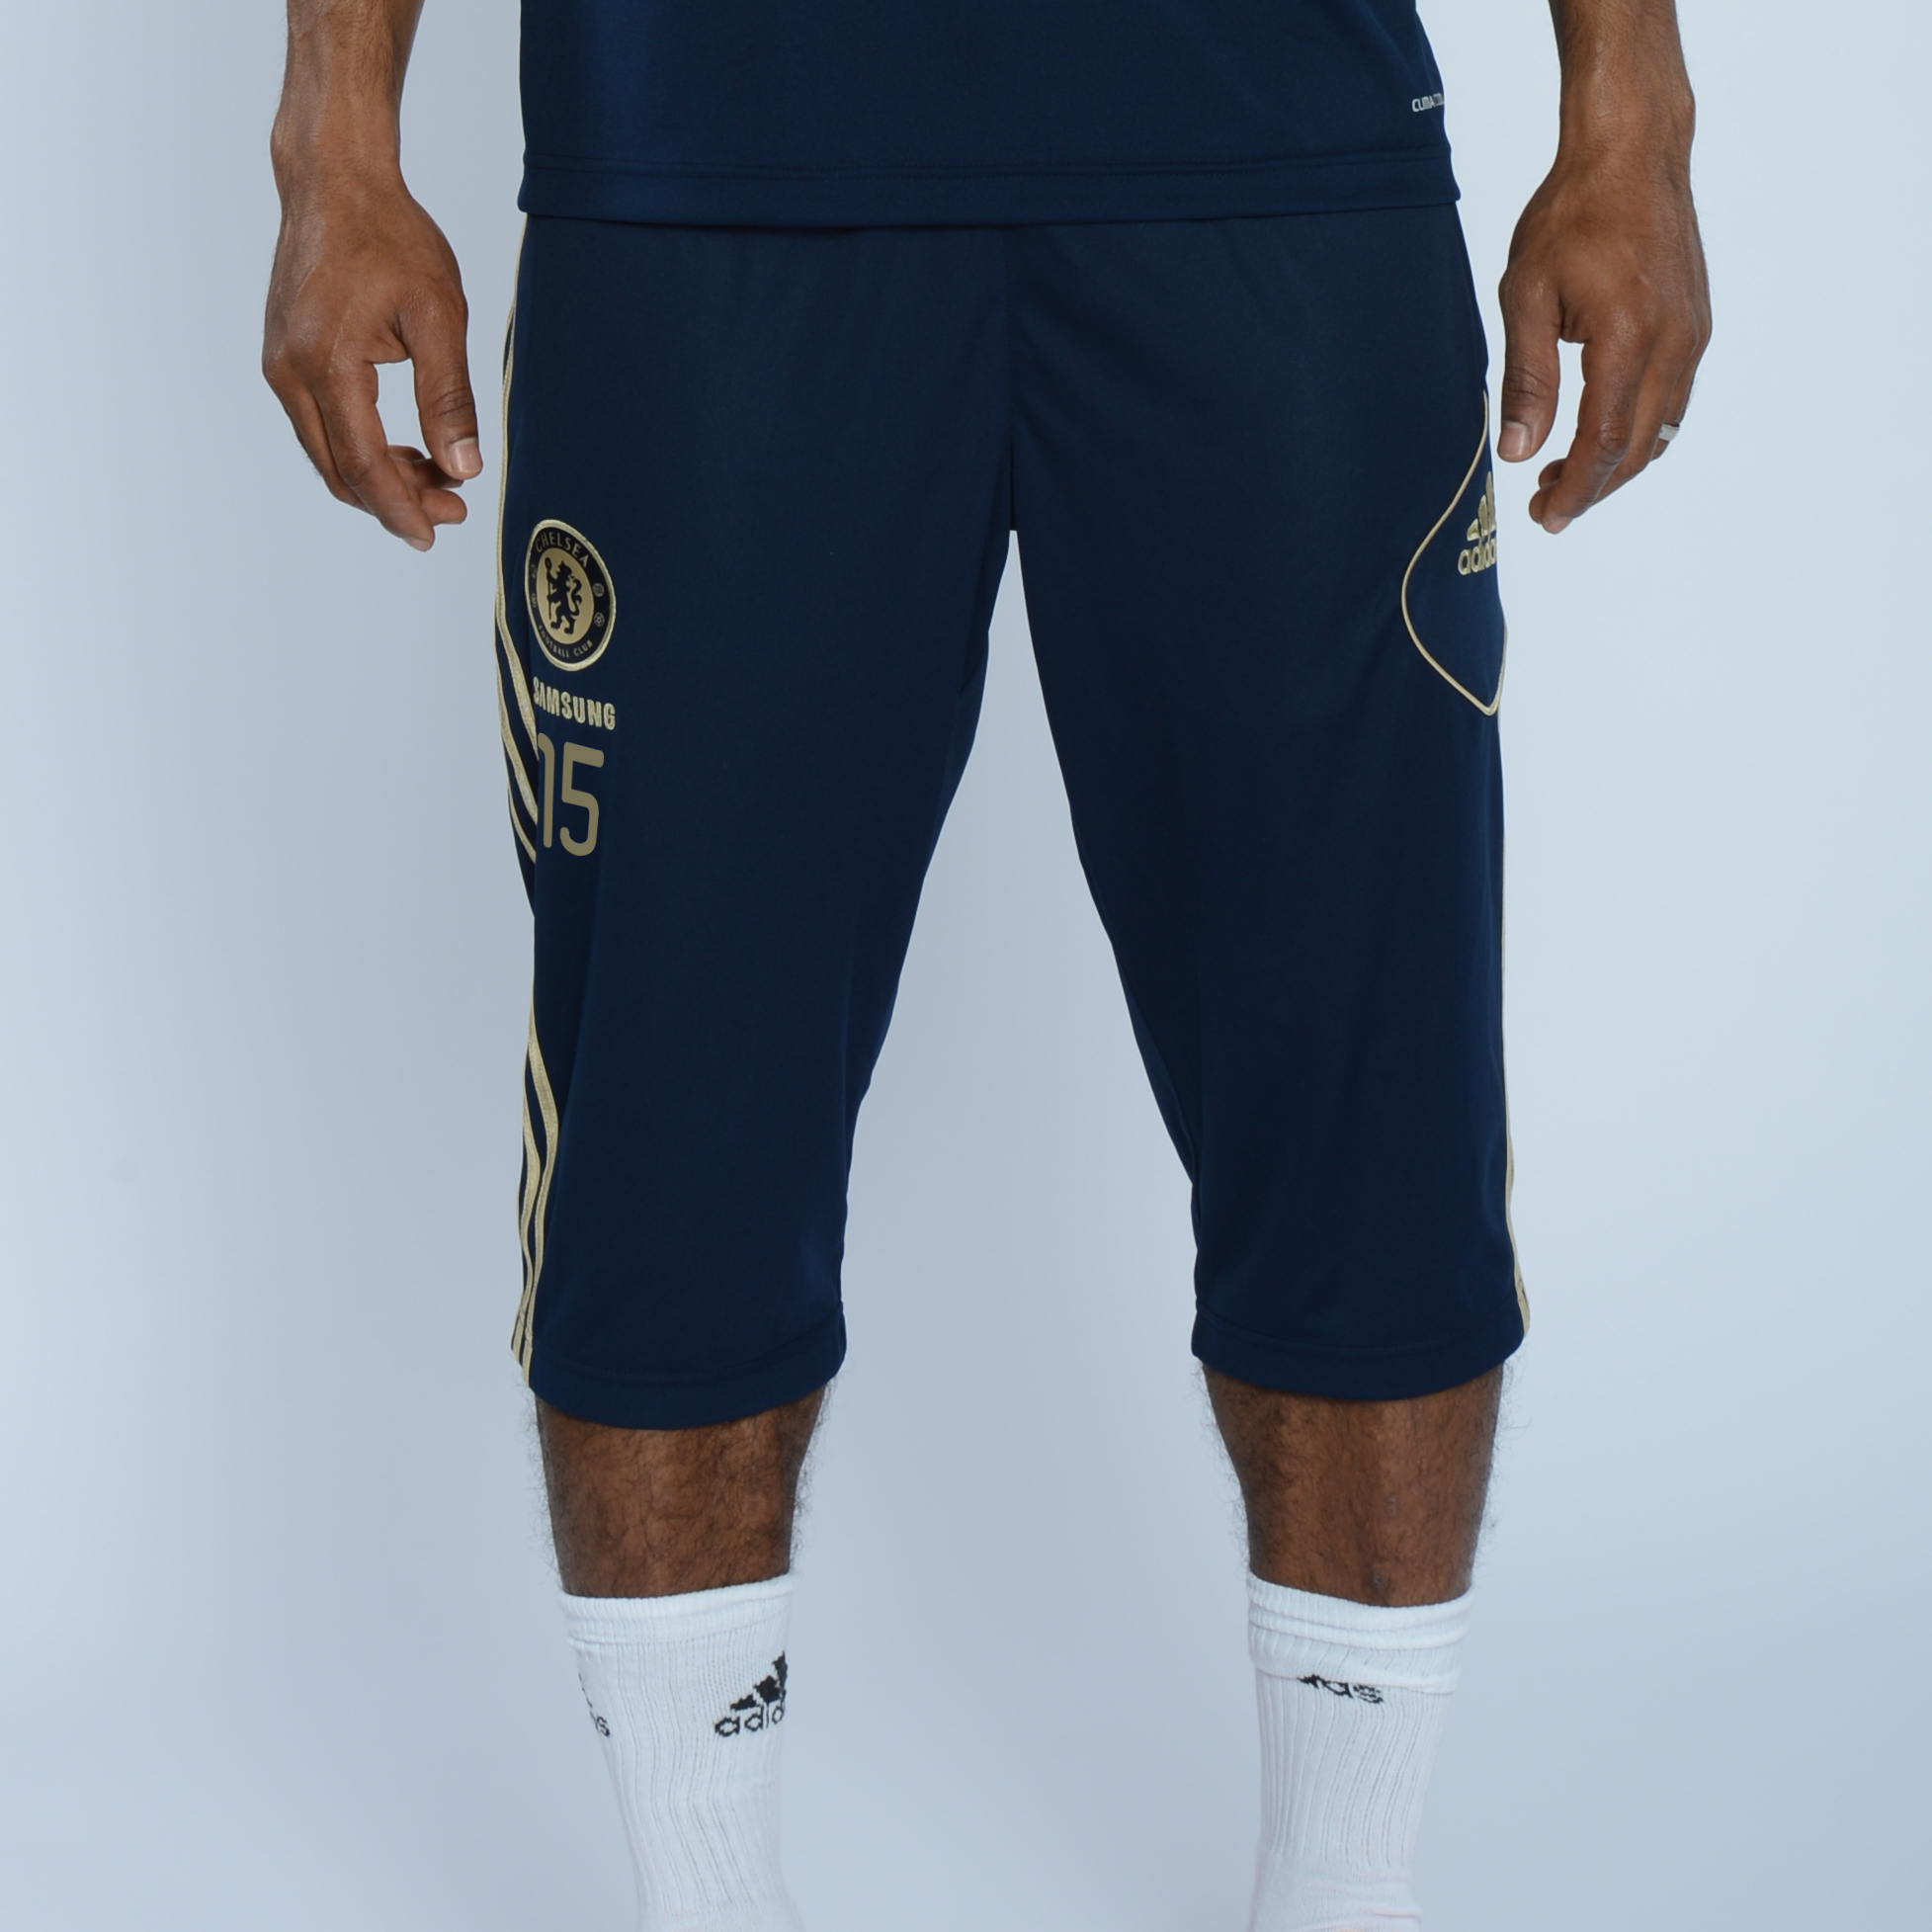 adidas Chelsea Training 3/4 Pant - Collegiate Navy/Light Football Gold